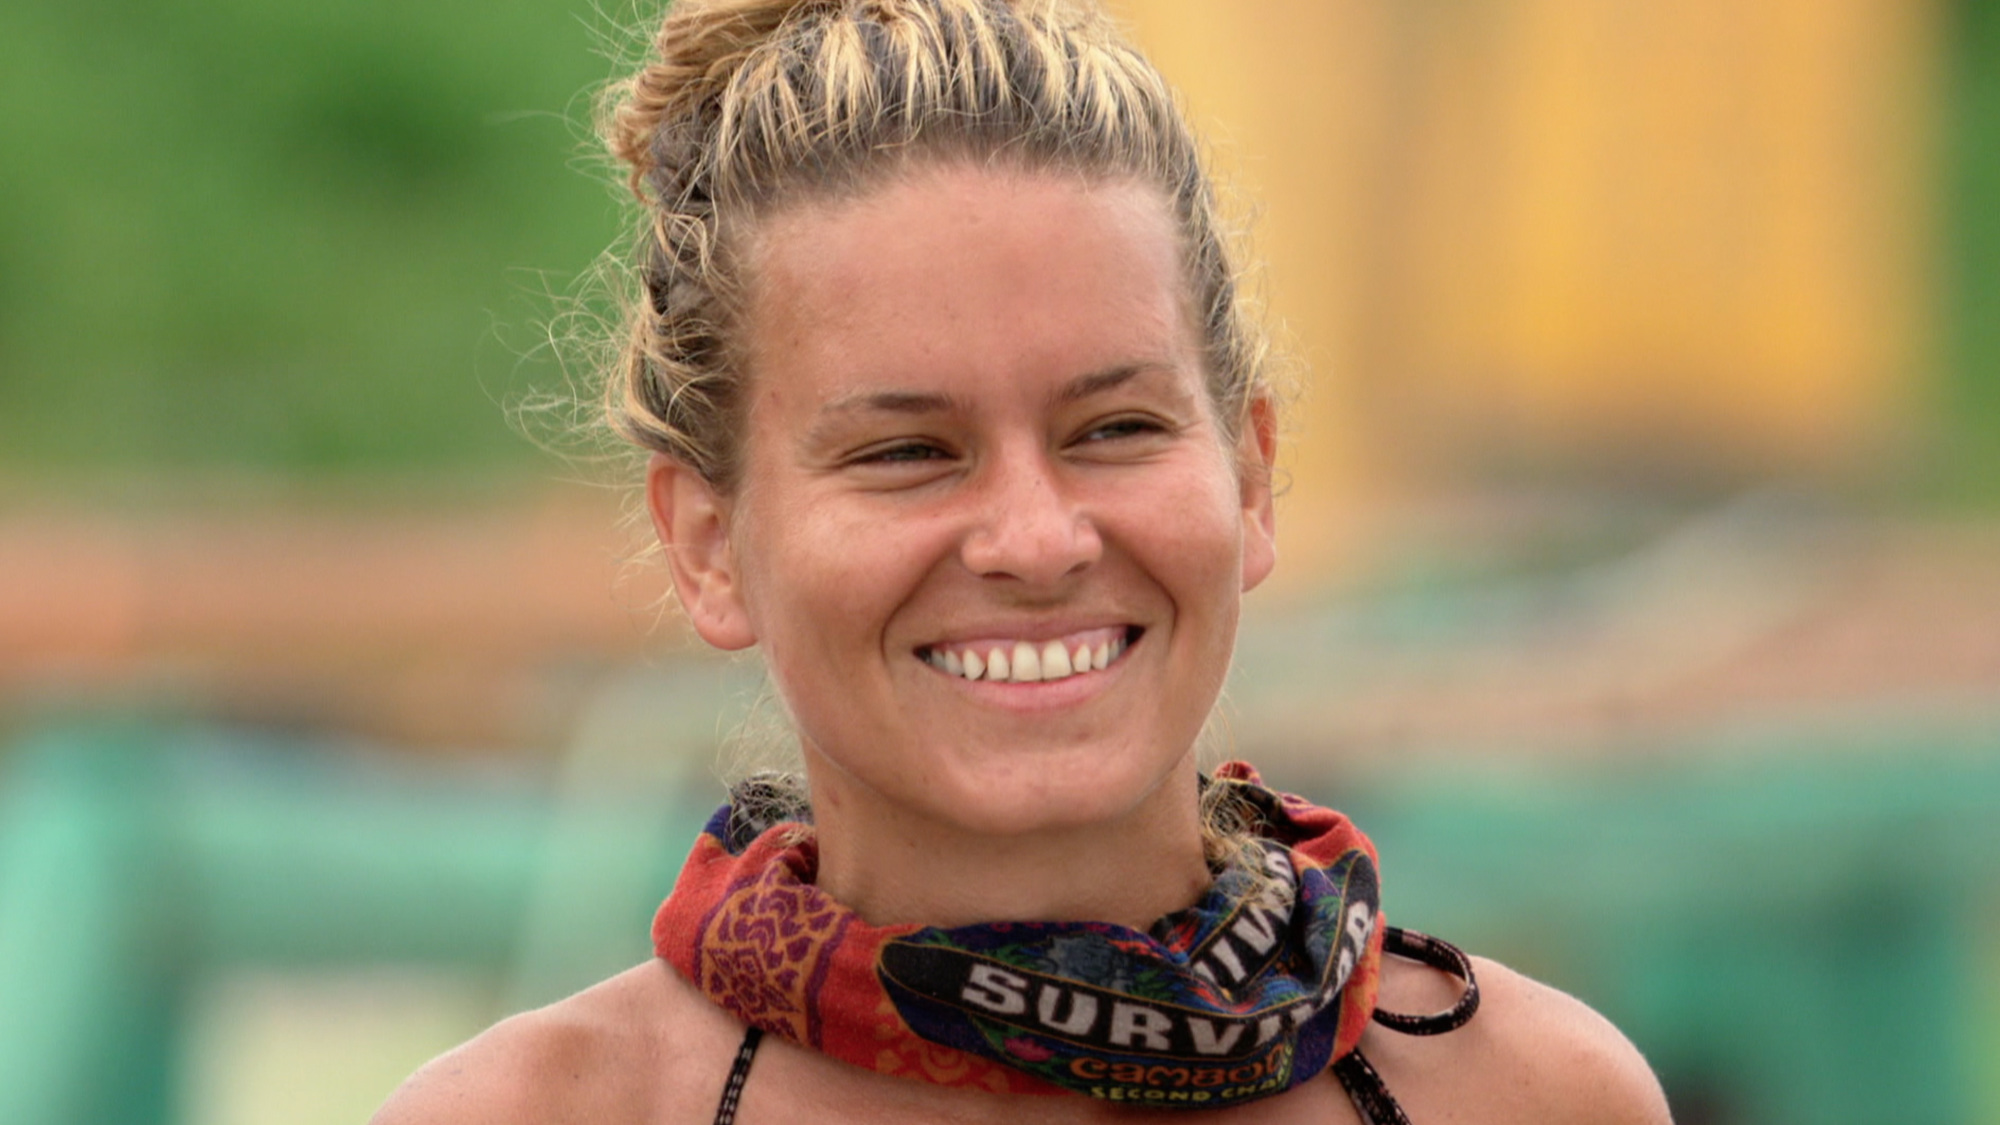 Abi-Maria Gomes is ready for challenge on Survivor: Second Chance